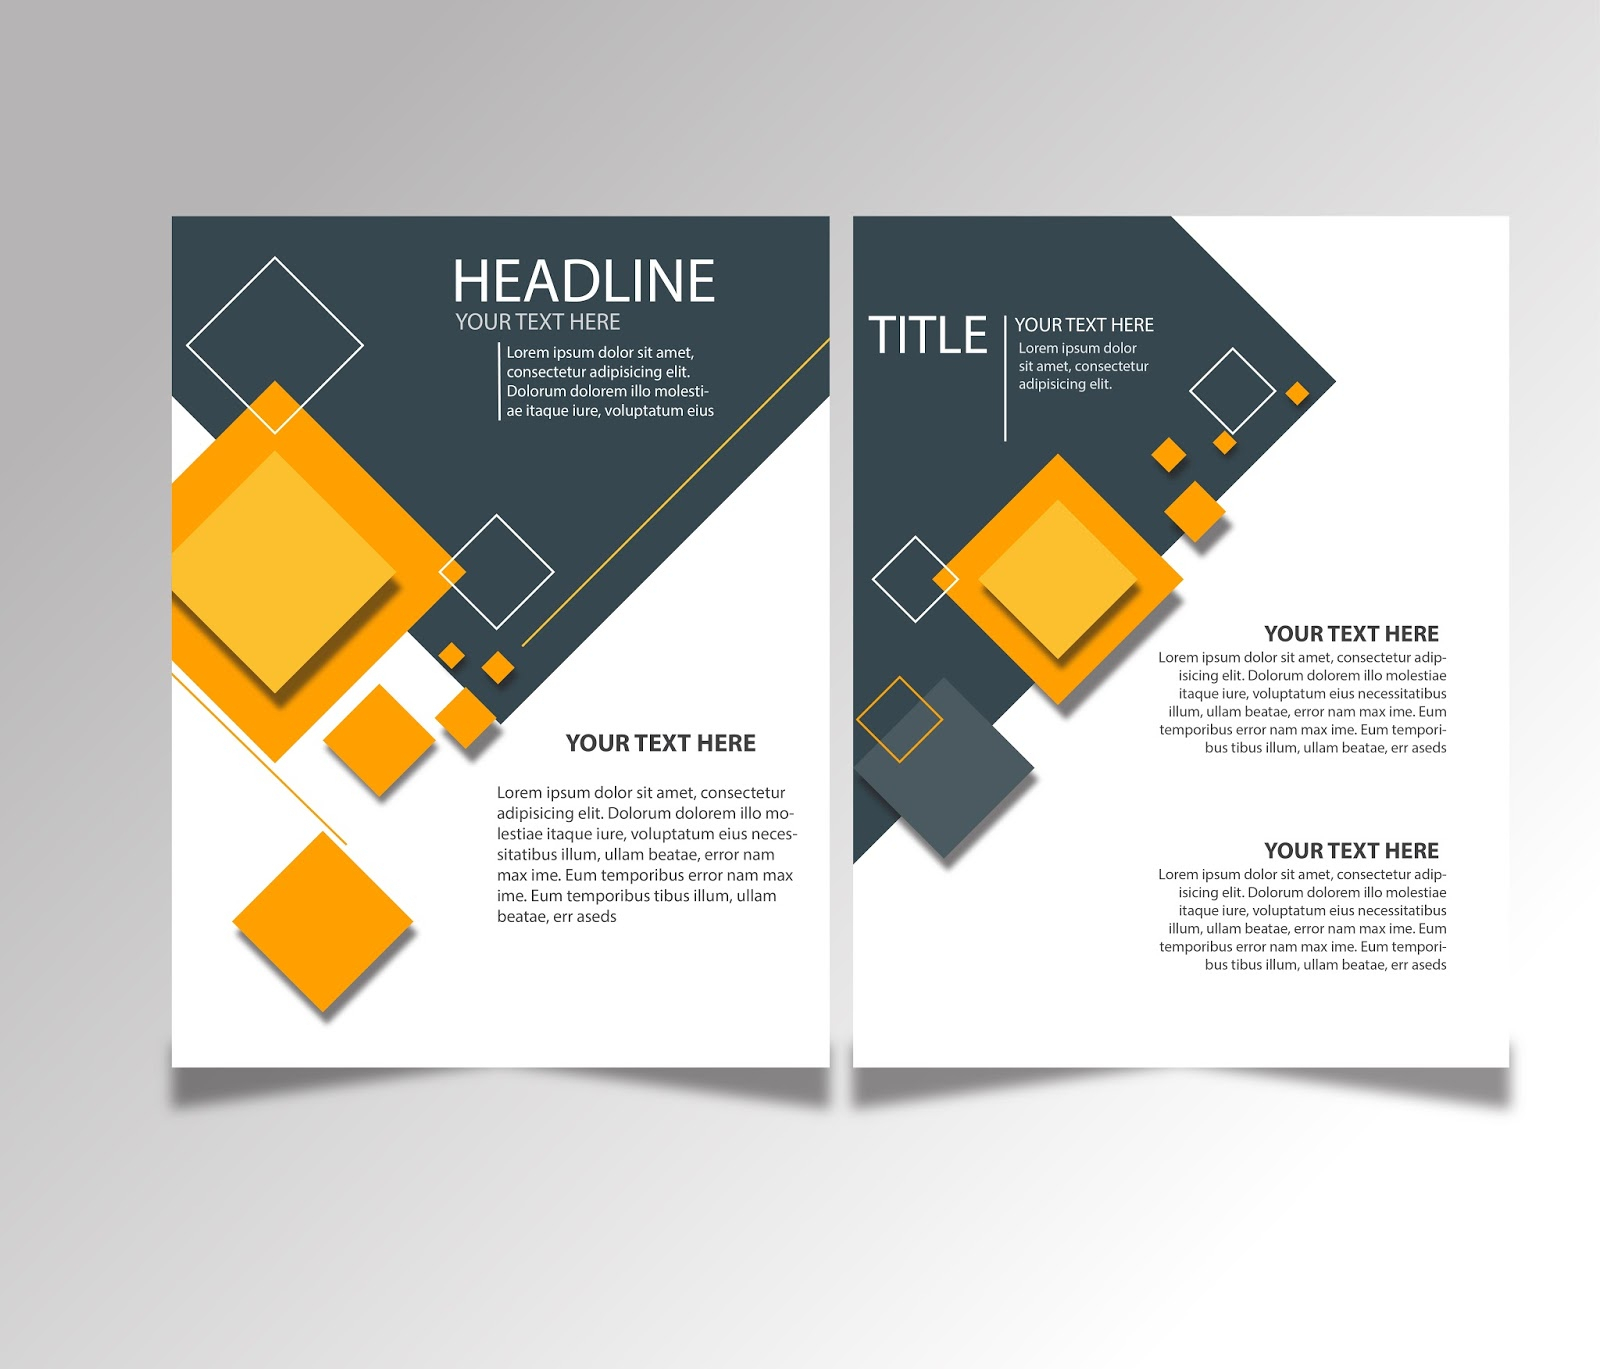 Free Download Brochure Design Templates Ai Files - Ideosprocess Inside Ai Brochure Templates Free Download